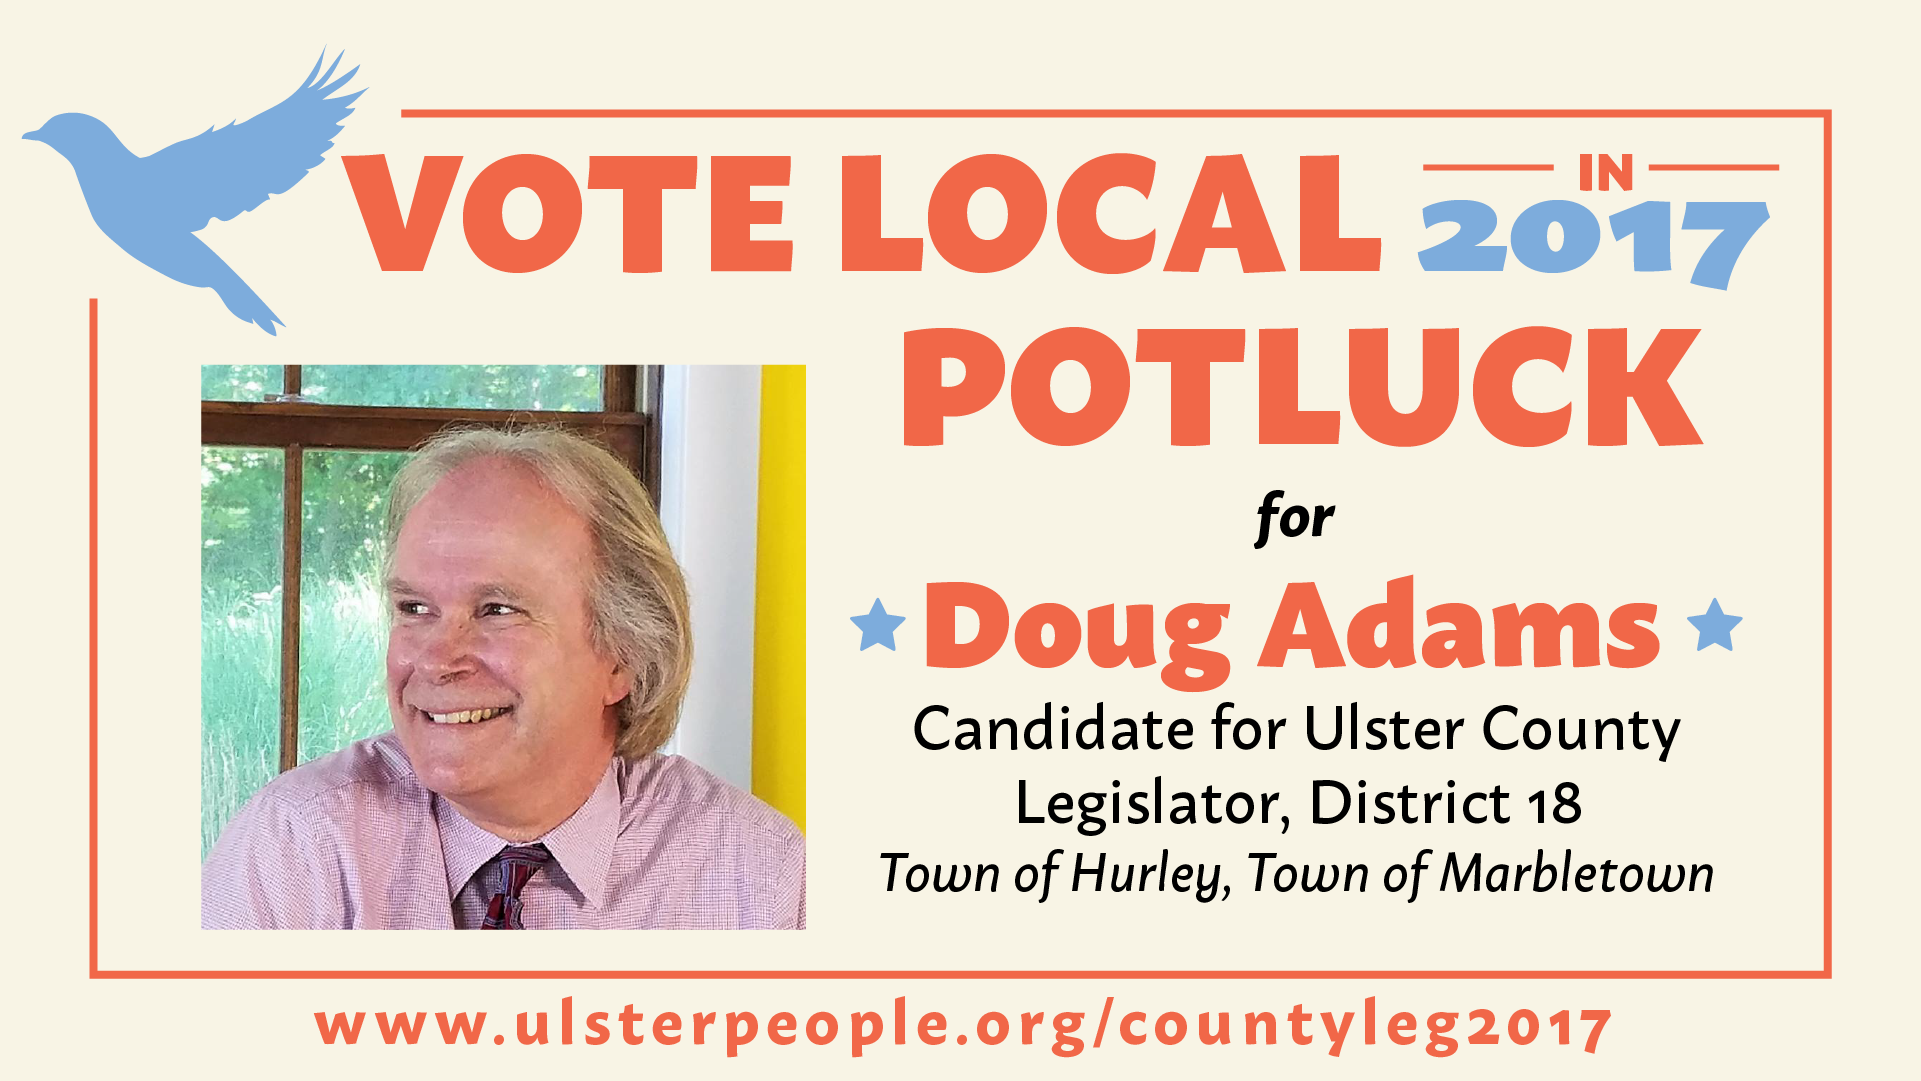 Vote Local Potluck for Doug Adams